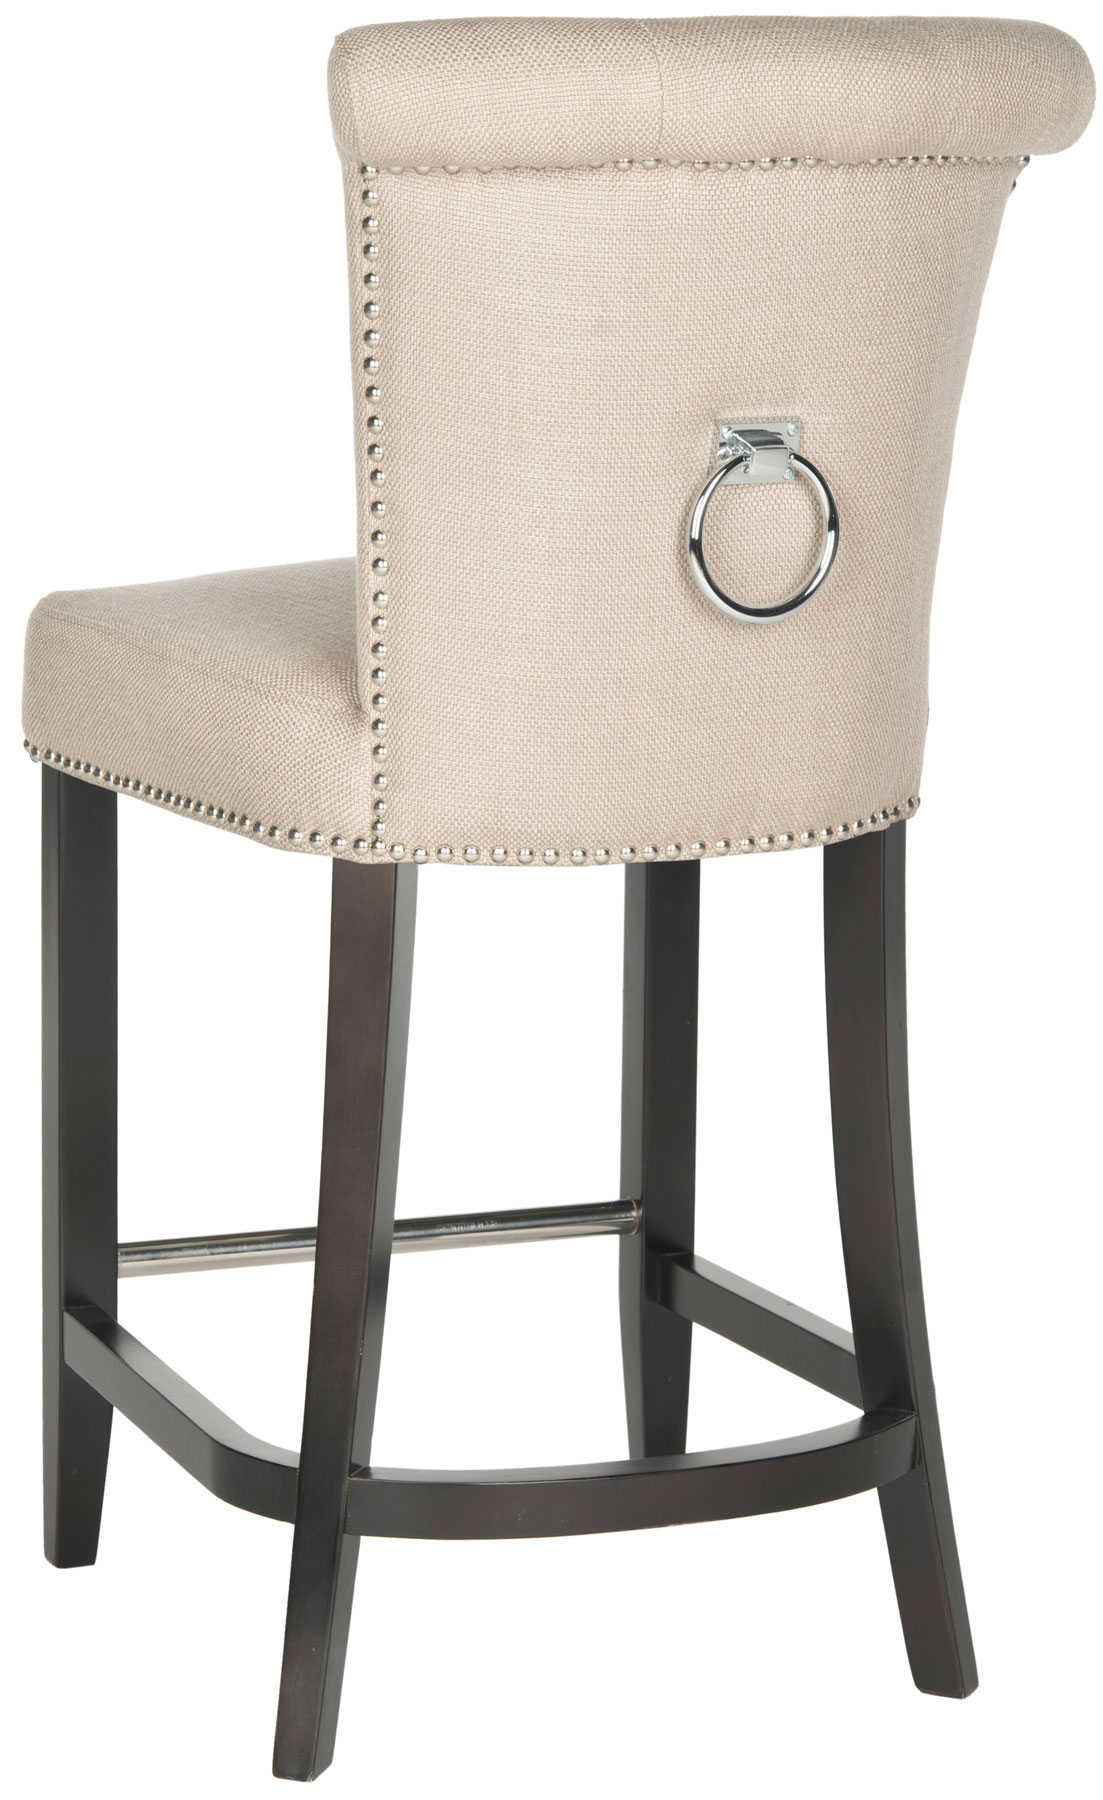 safavieh sinclair ring side chair dining room covers at kohls hud8241b counter stools furniture by